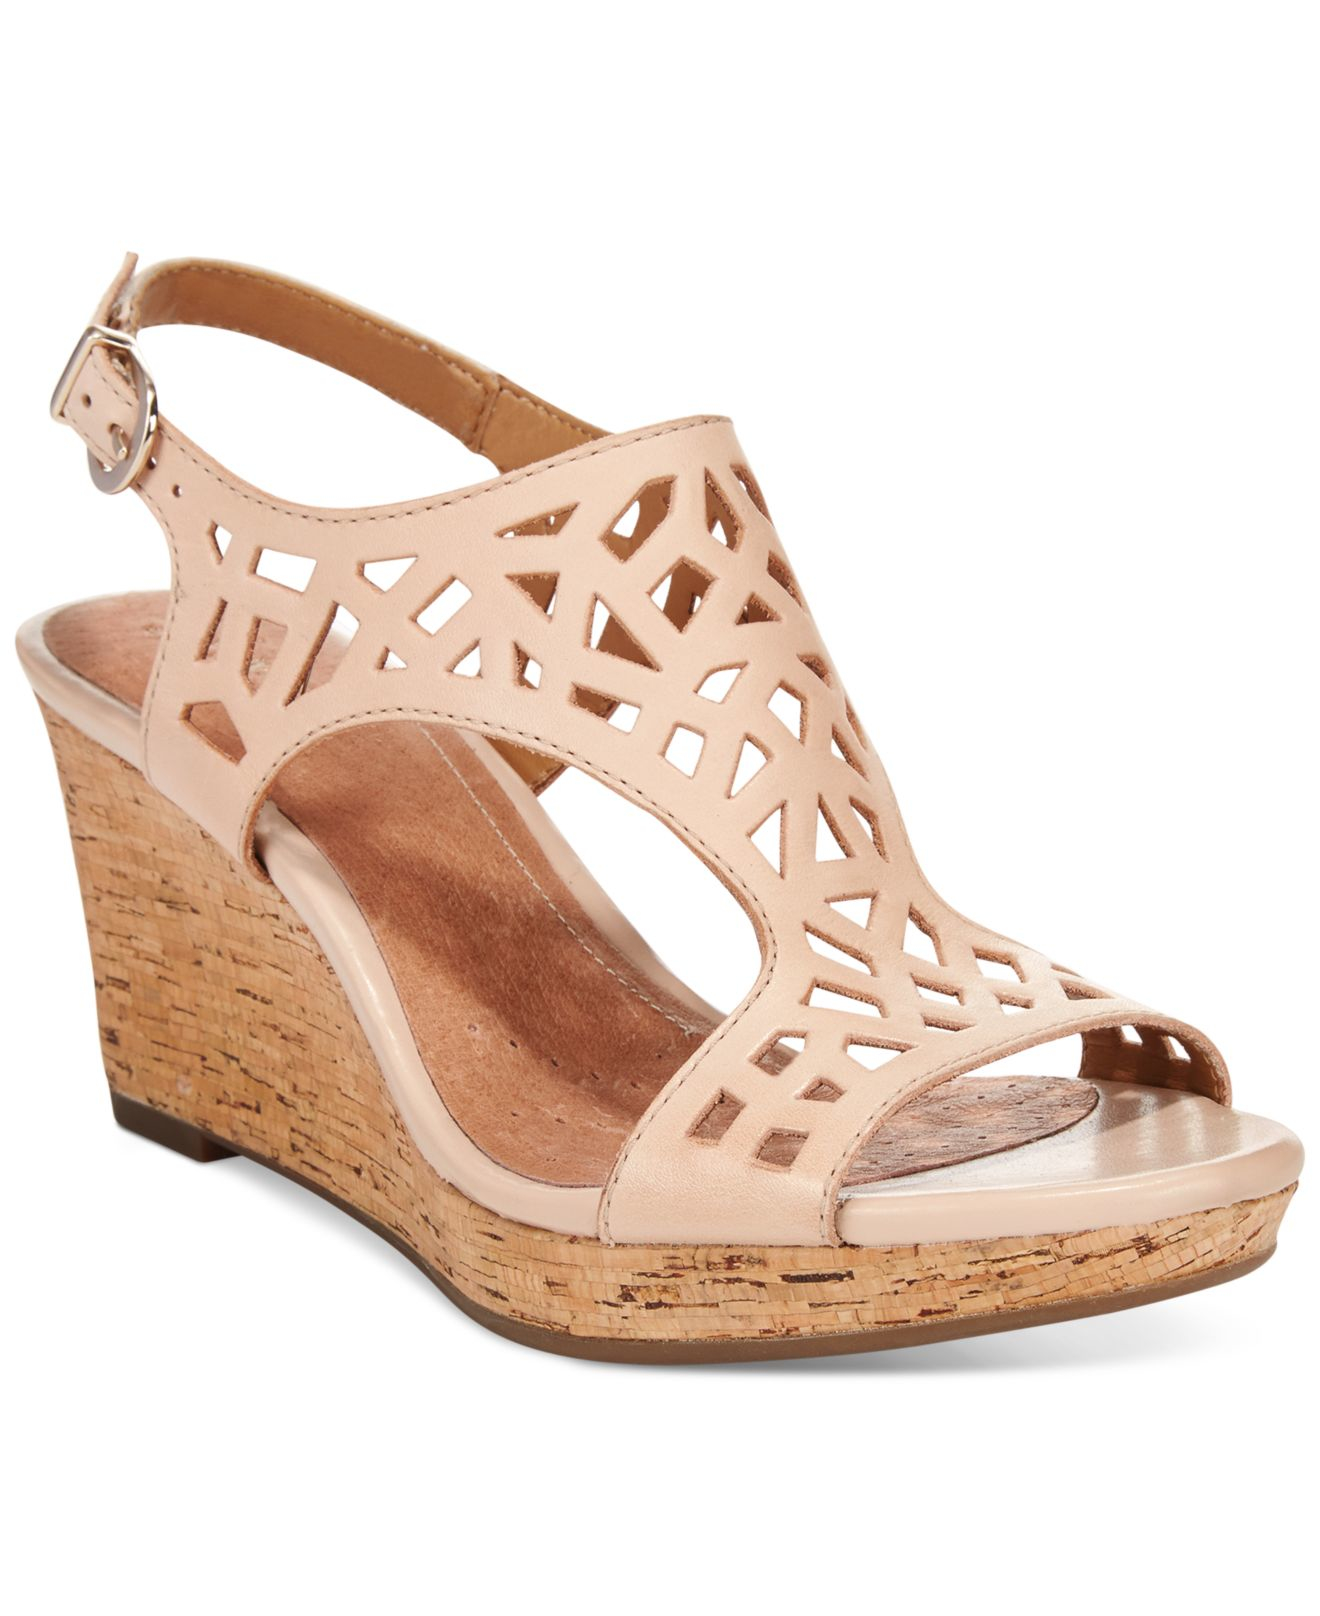 Lyst - Clarks Artisan Women s Palmdale Sands Wedge Sandals in Natural 953e163efb